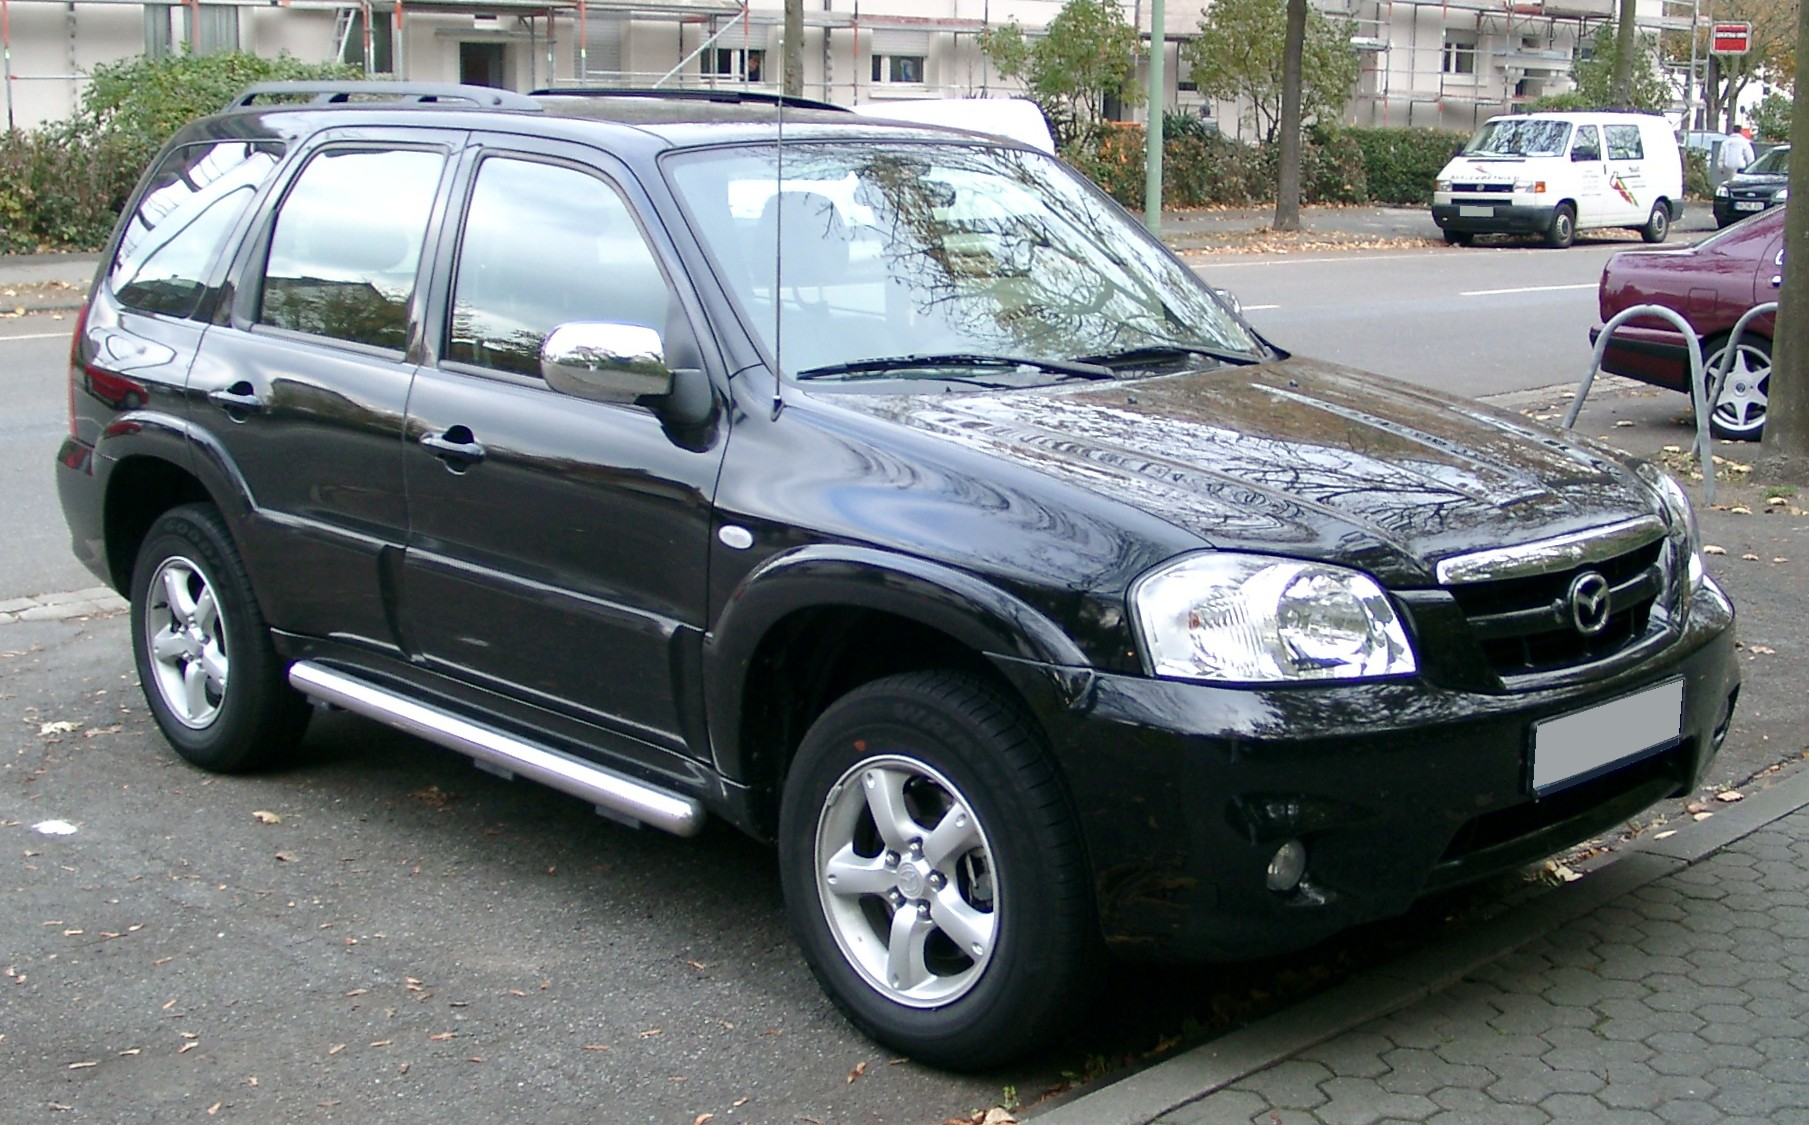 File:Mazda Tribute front 20071025.jpg - Wikimedia Commons